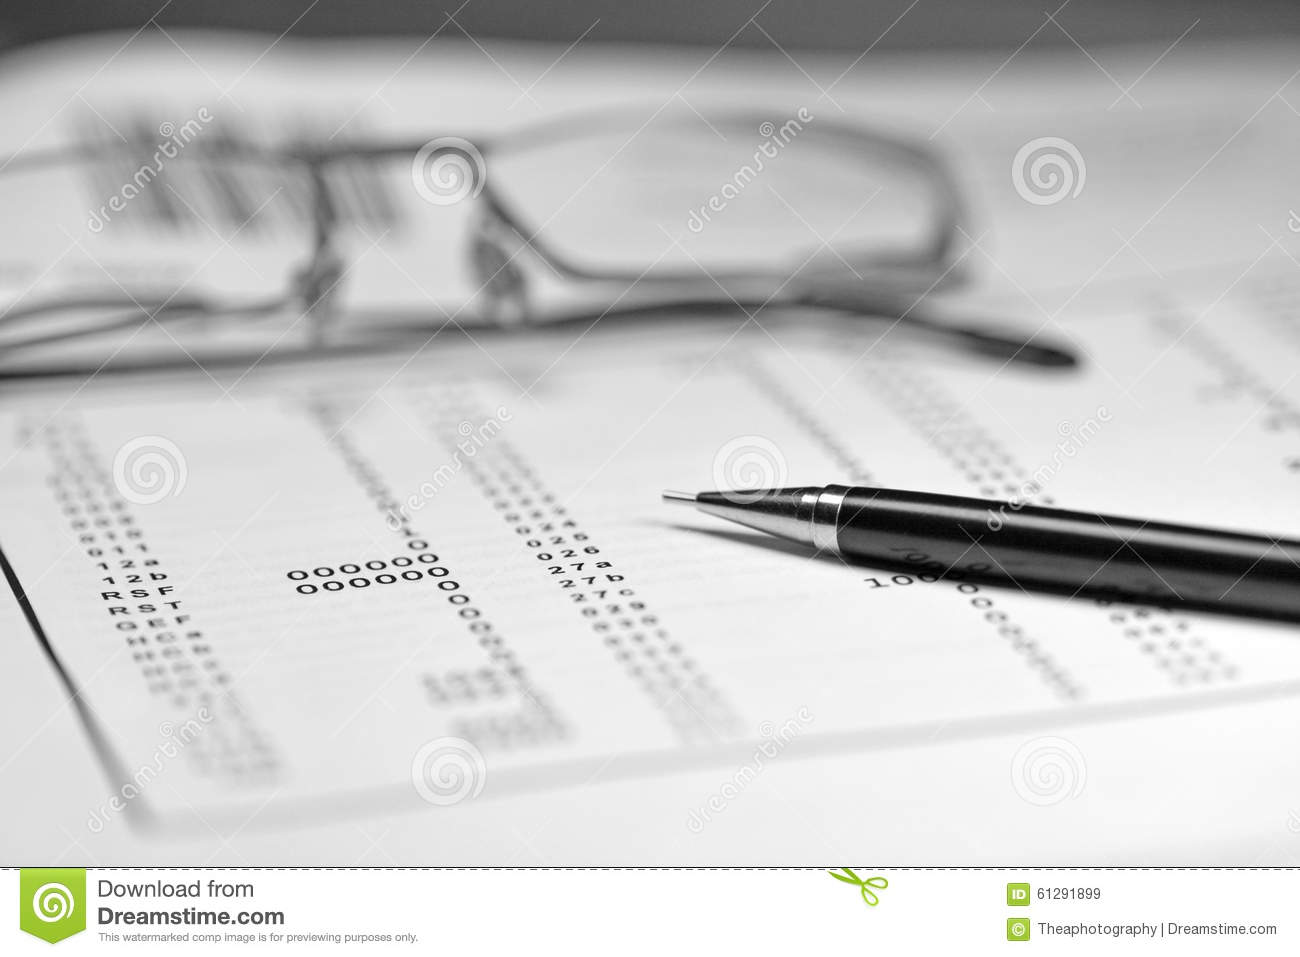 Calculation Stock Photo - Image: 61291899